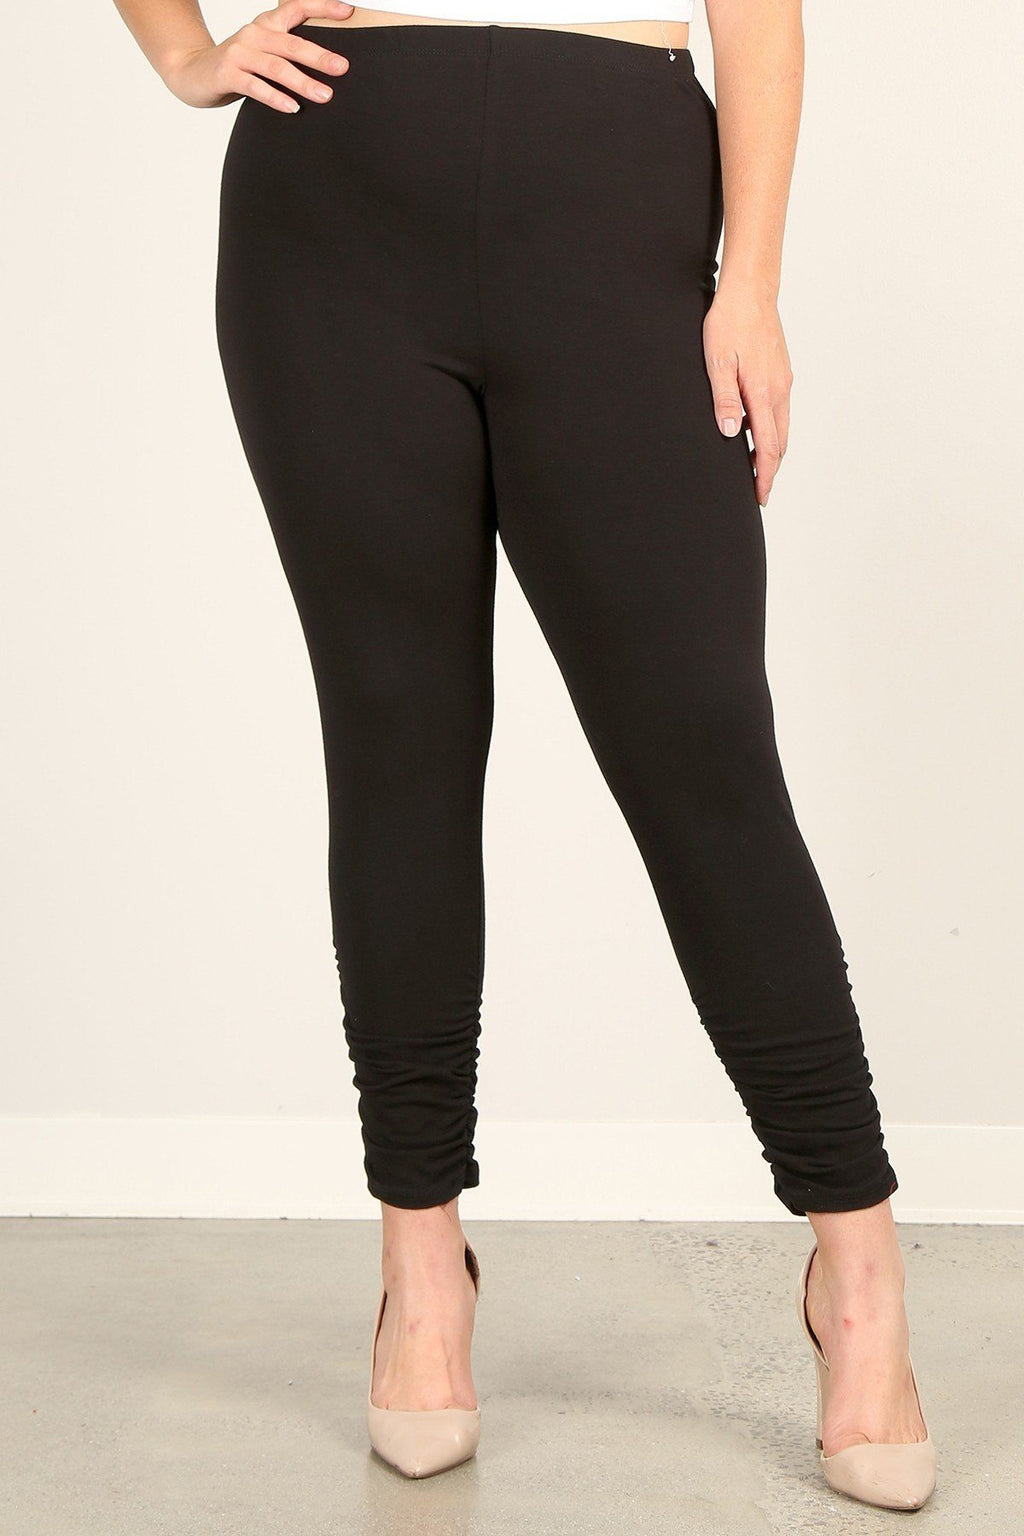 Solid High Rise  Fitted Ruched Leggings Pants